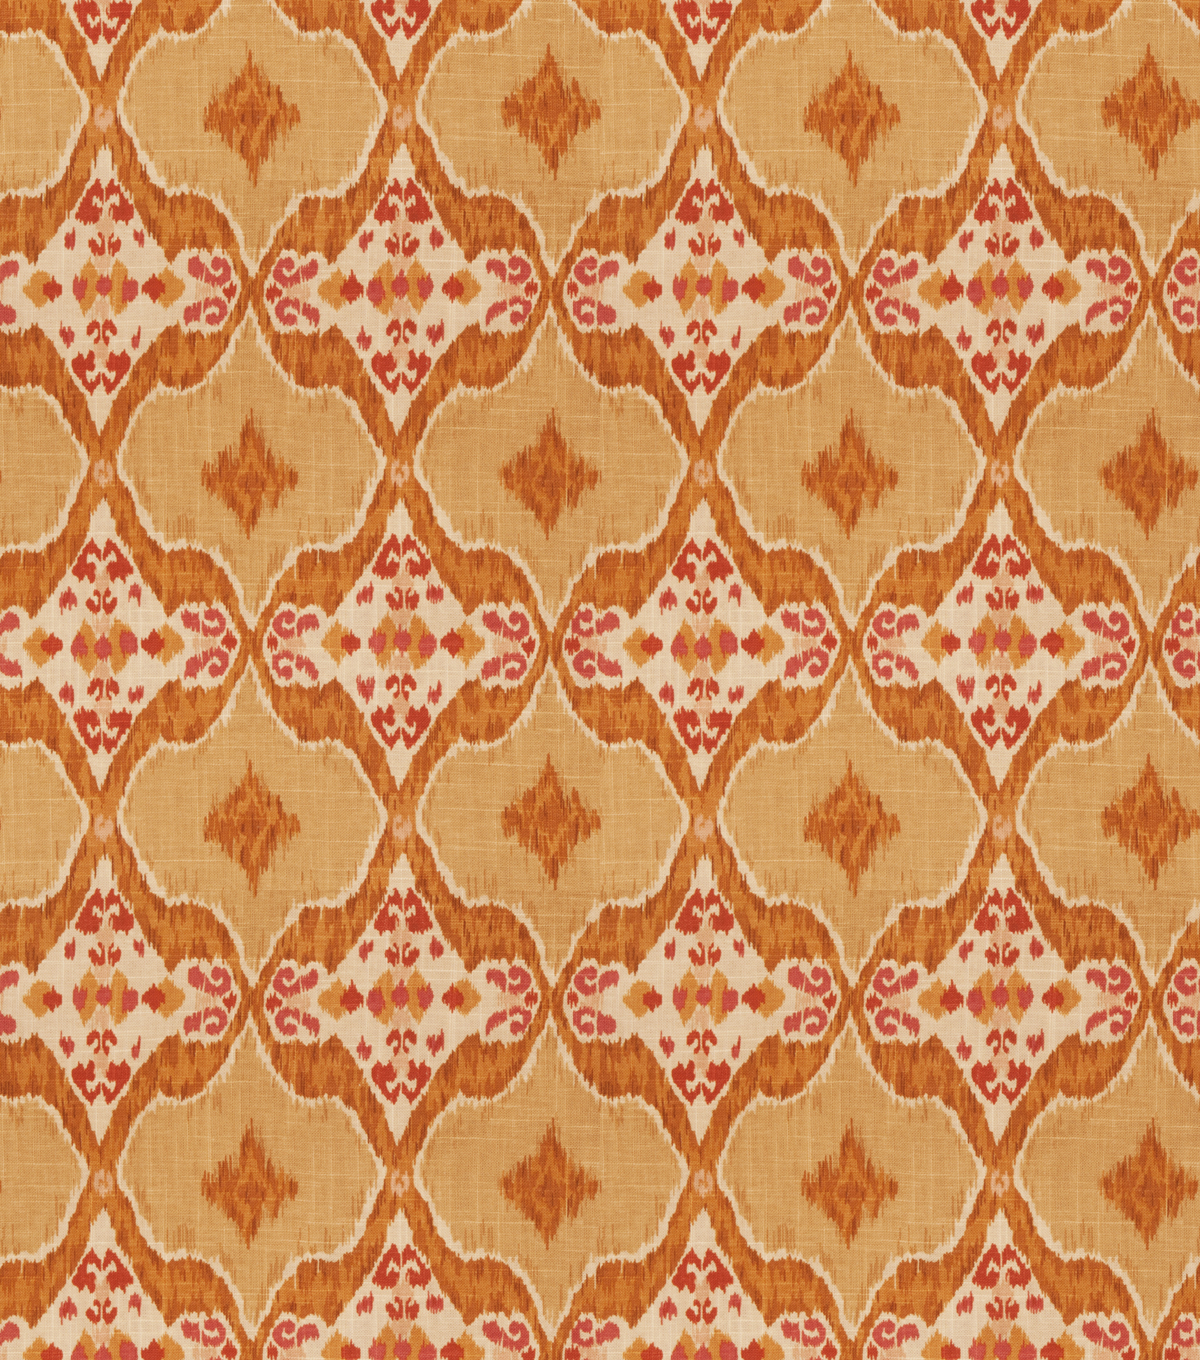 Eaton Square Multi-Purpose Decor Fabric 54\u0022-Bronco/Canyon